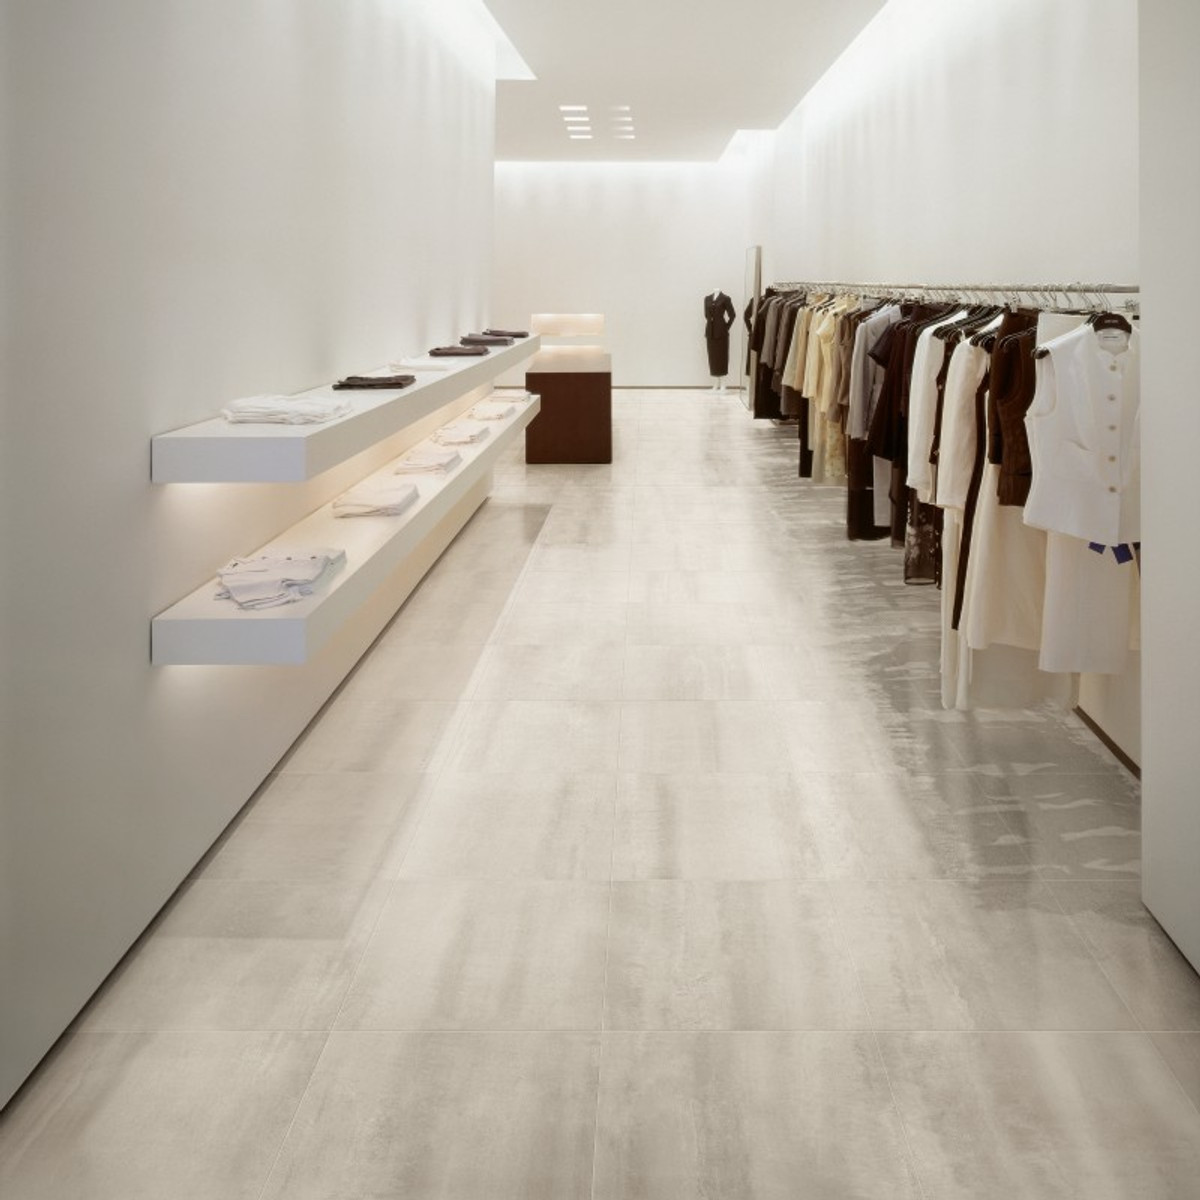 Steelwalk Porcelain Tile Collection